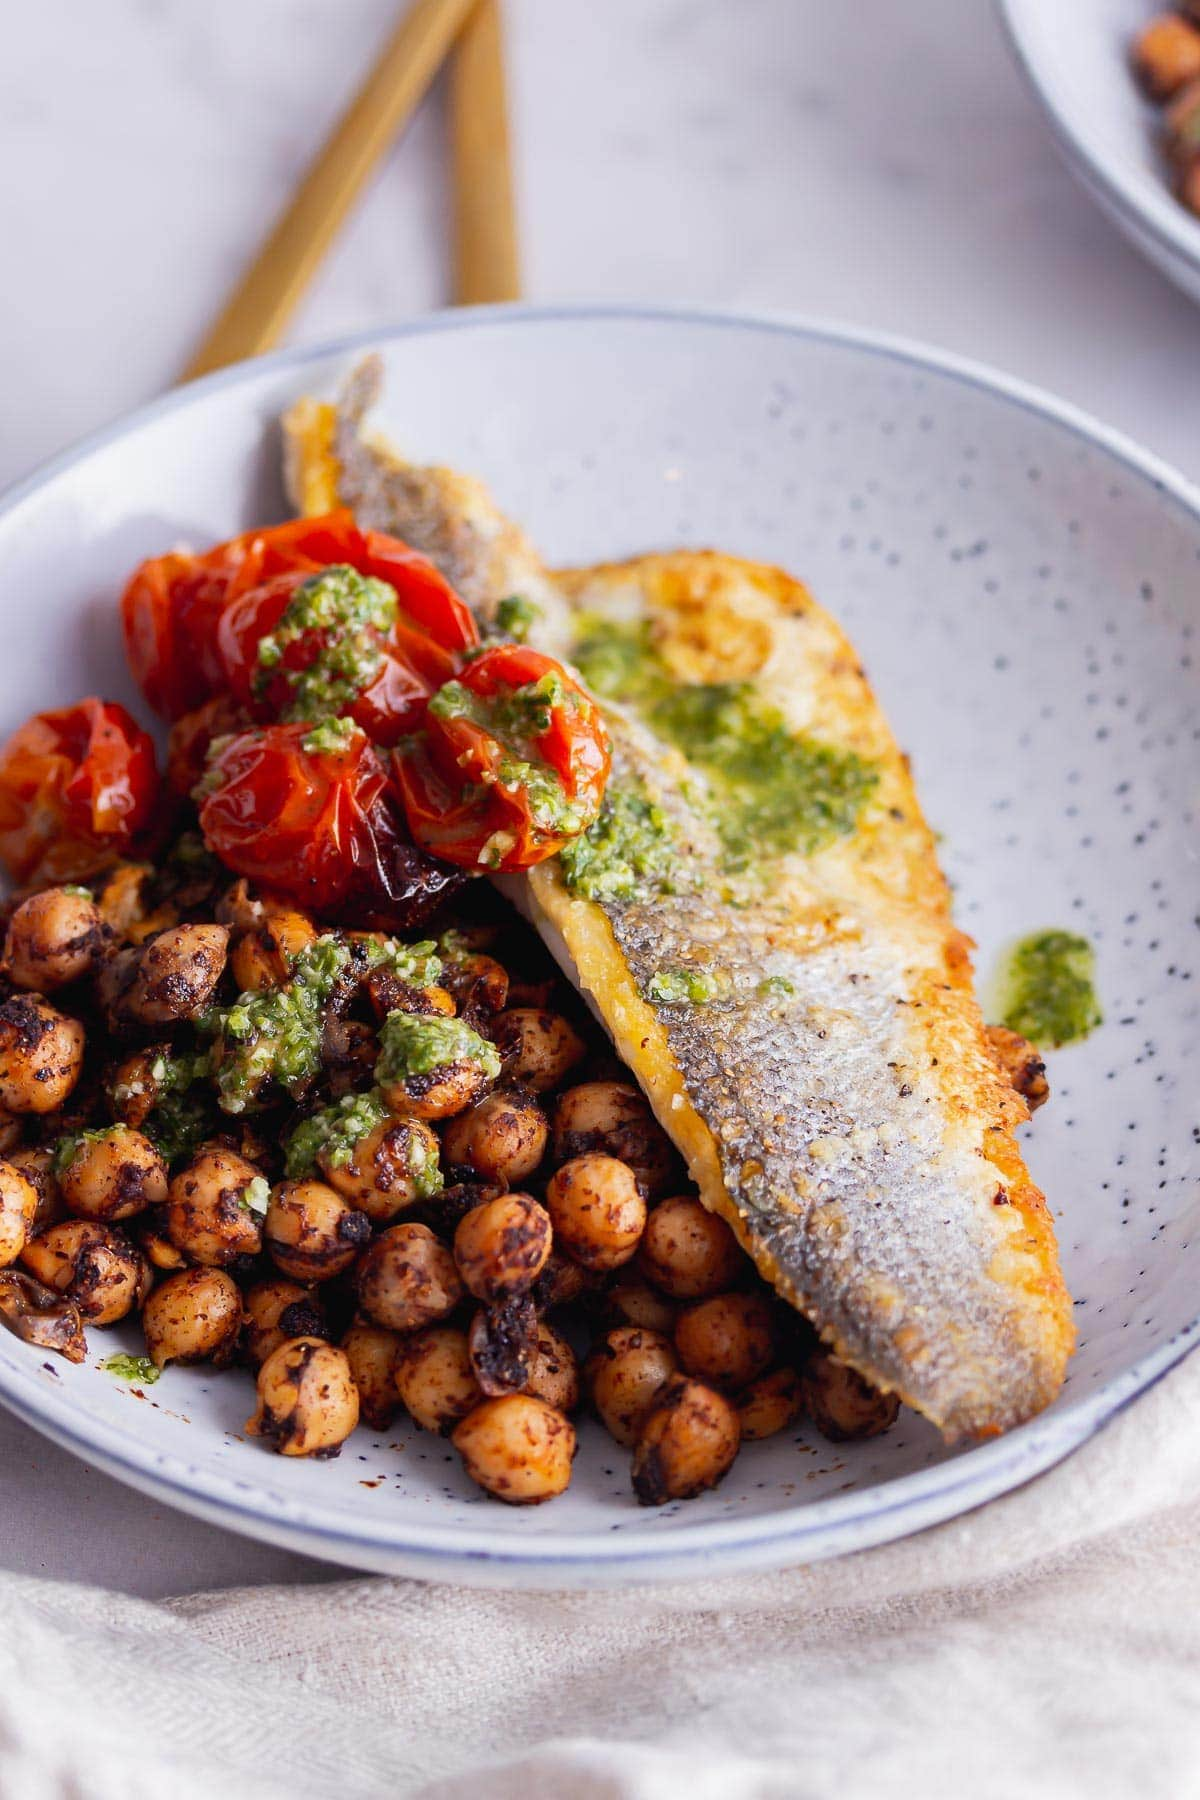 Bowl of crispy fish, chickpeas and tomatoes